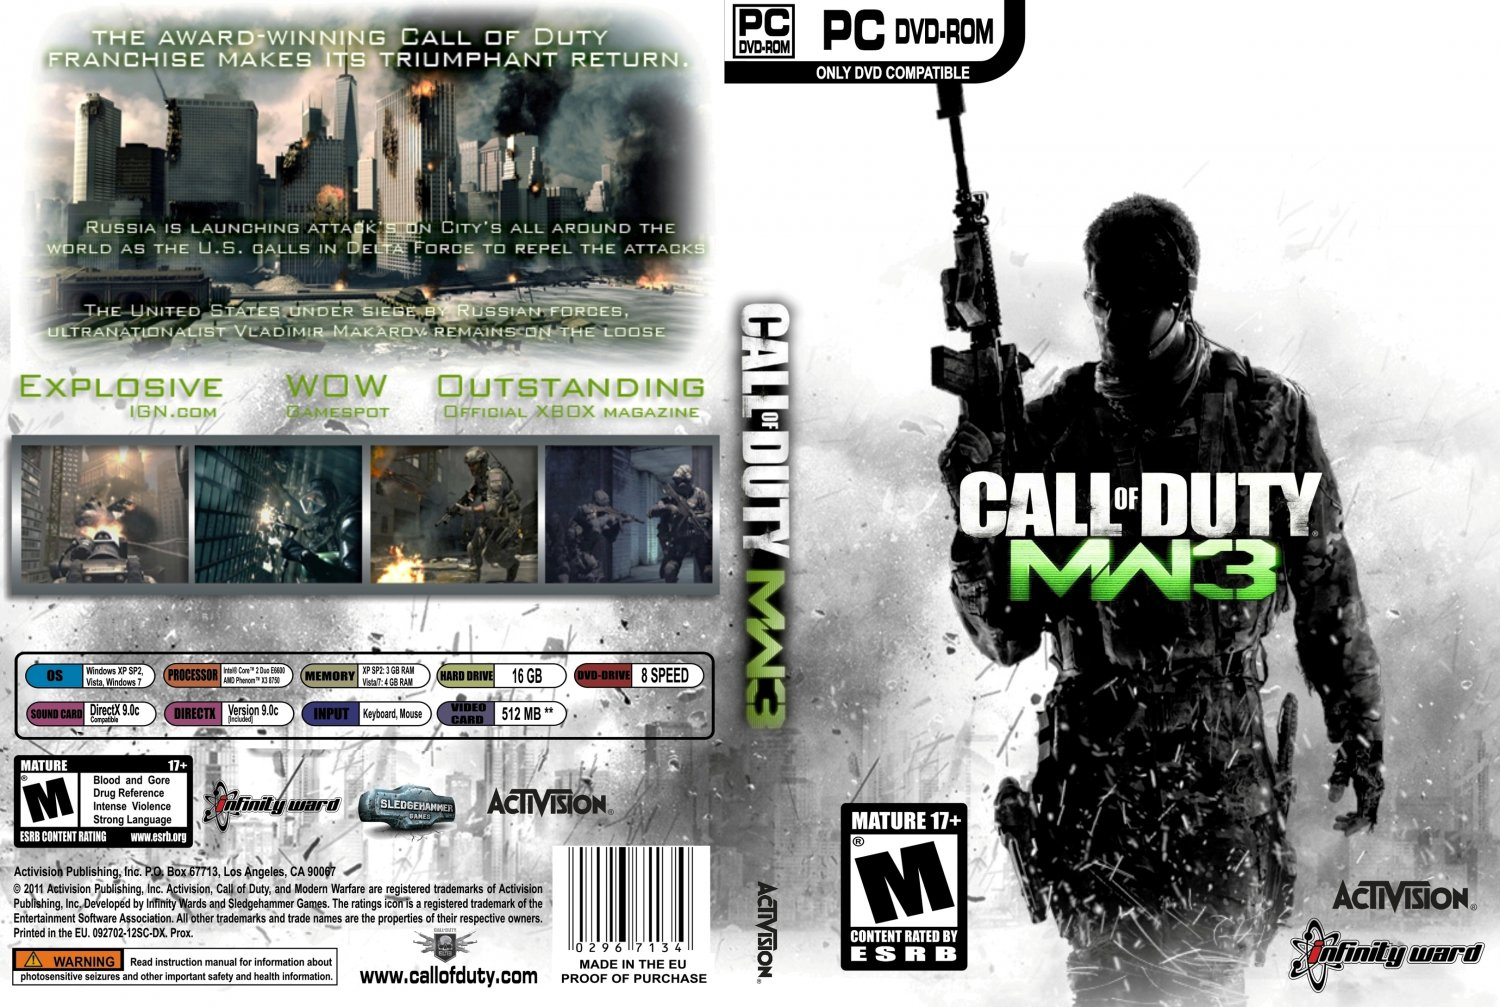 telecharger call of duty mw3 pc gratuit complet